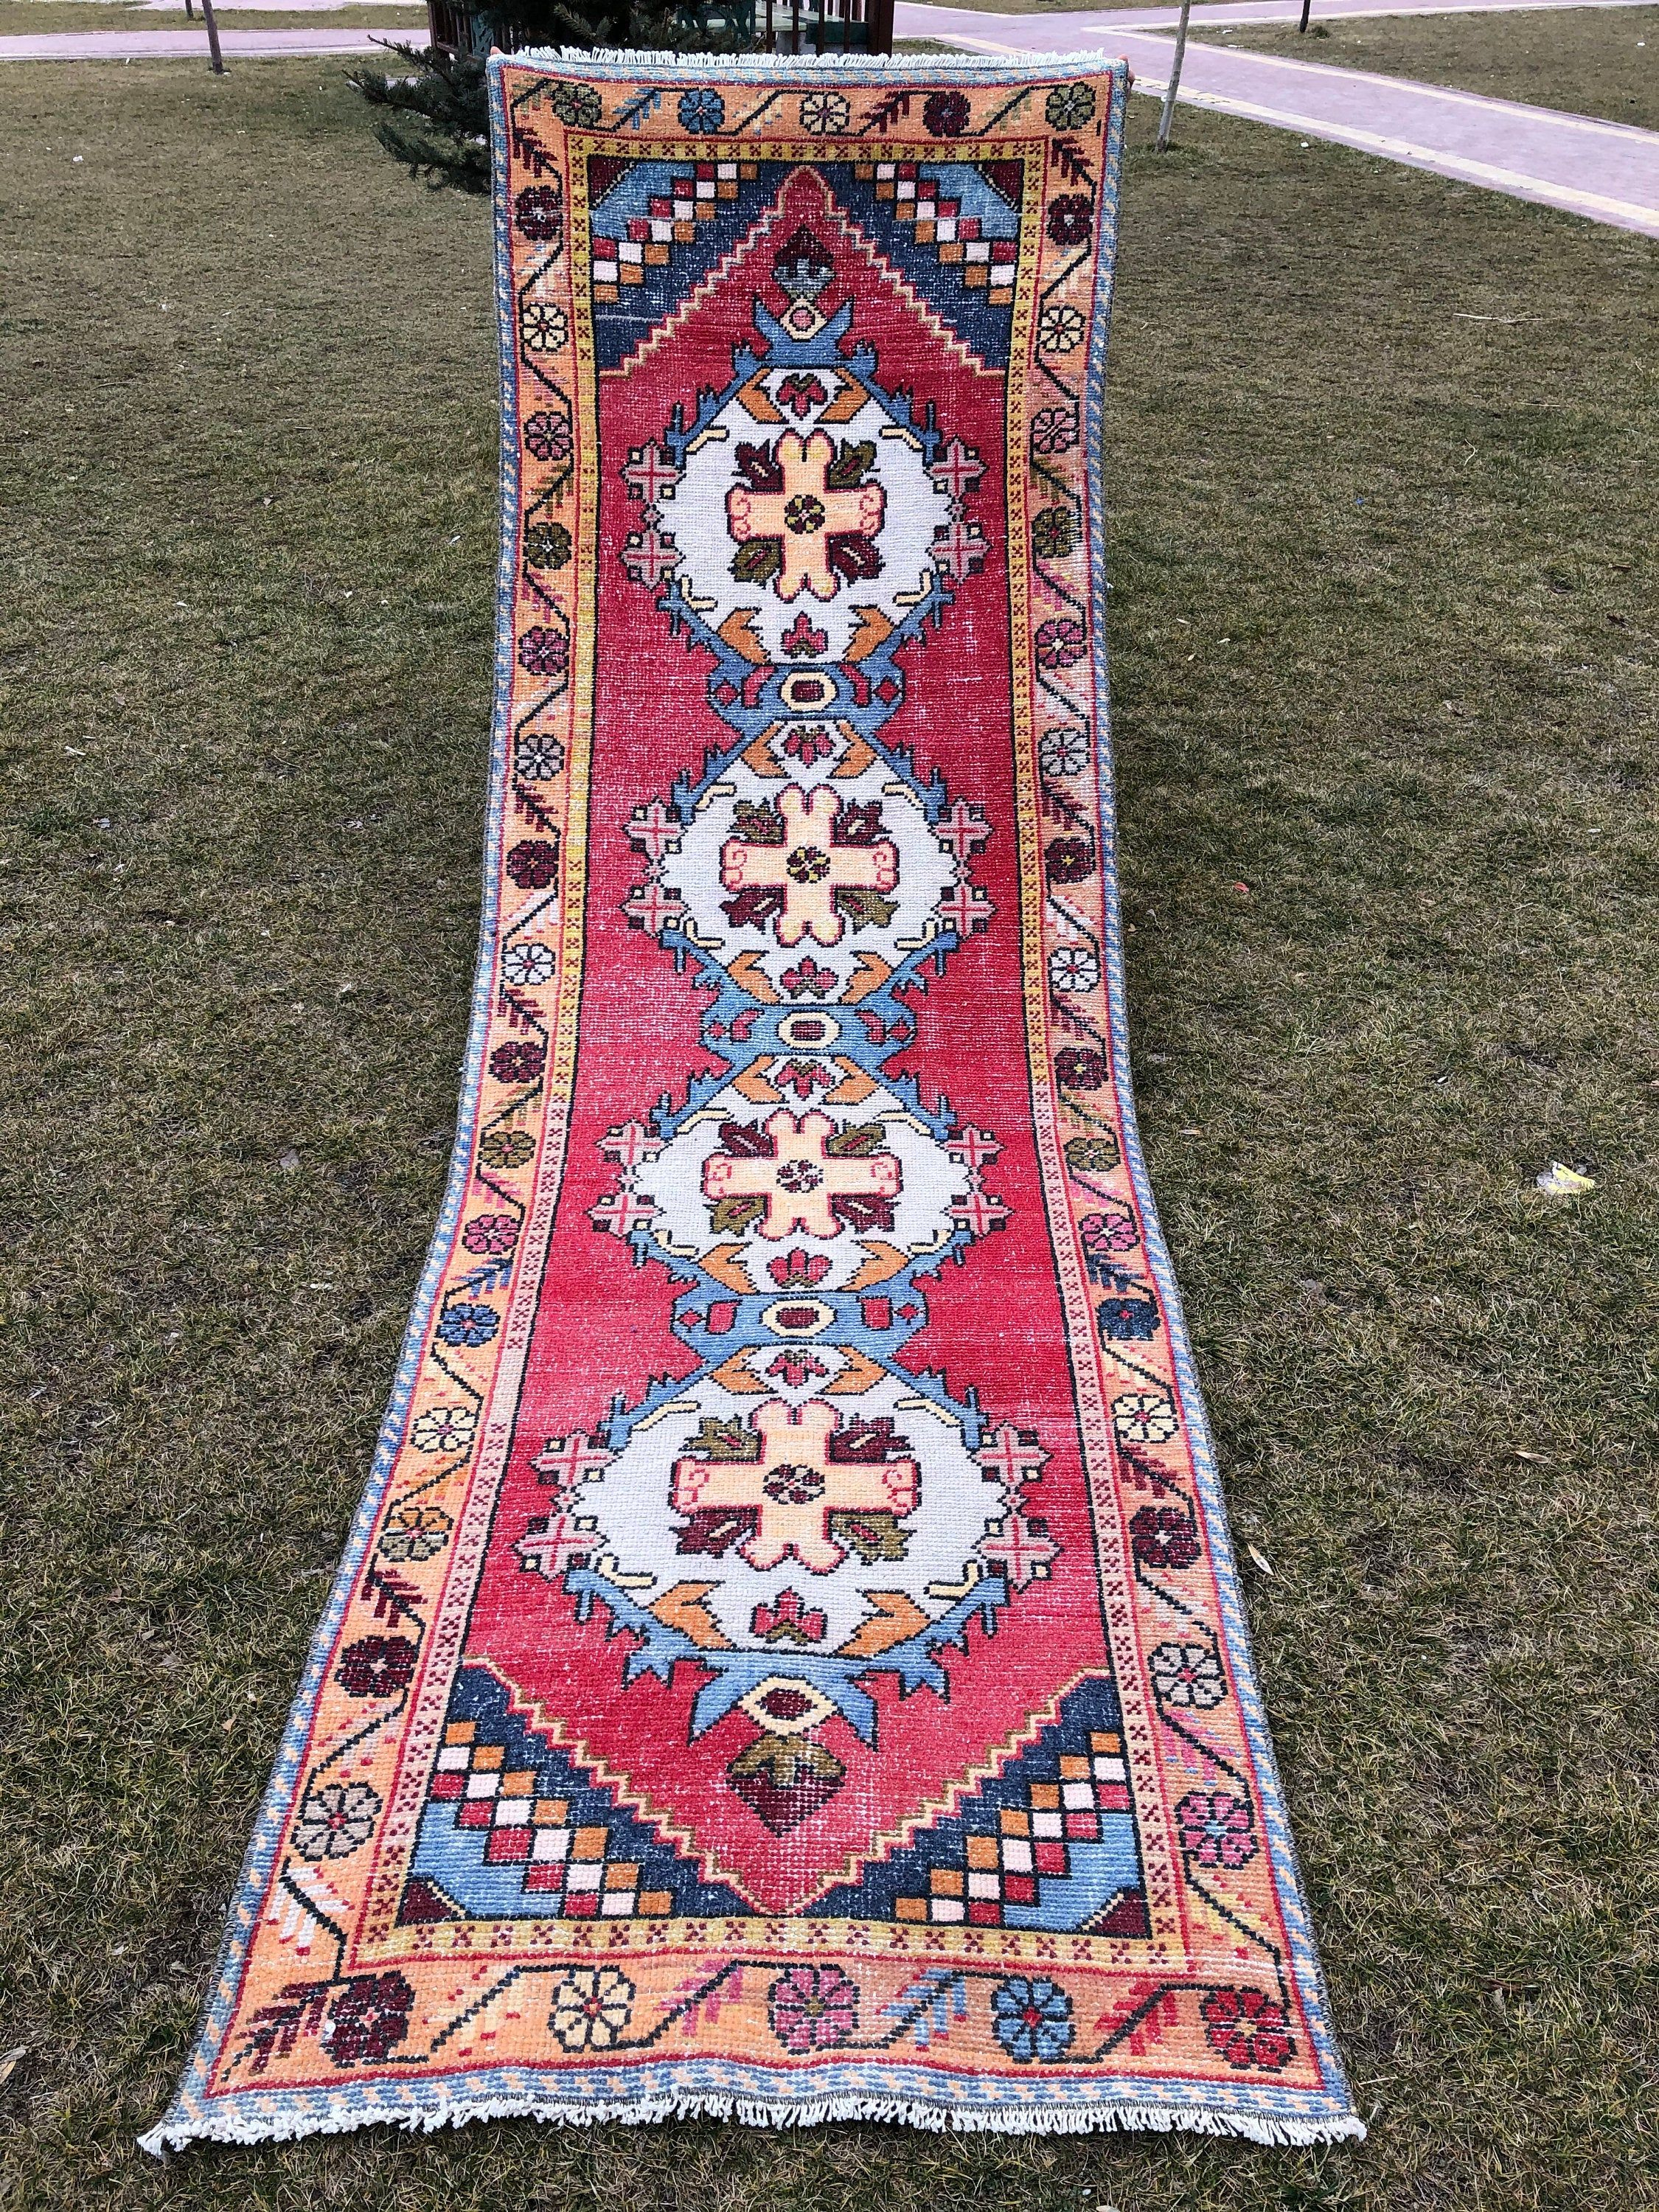 Oushak Runner Rug Red Blue Vintage Turkish Runner Hallway Etsy In 2020 Rug Runner Runner Rug Entryway Rugs #runner #for #living #room